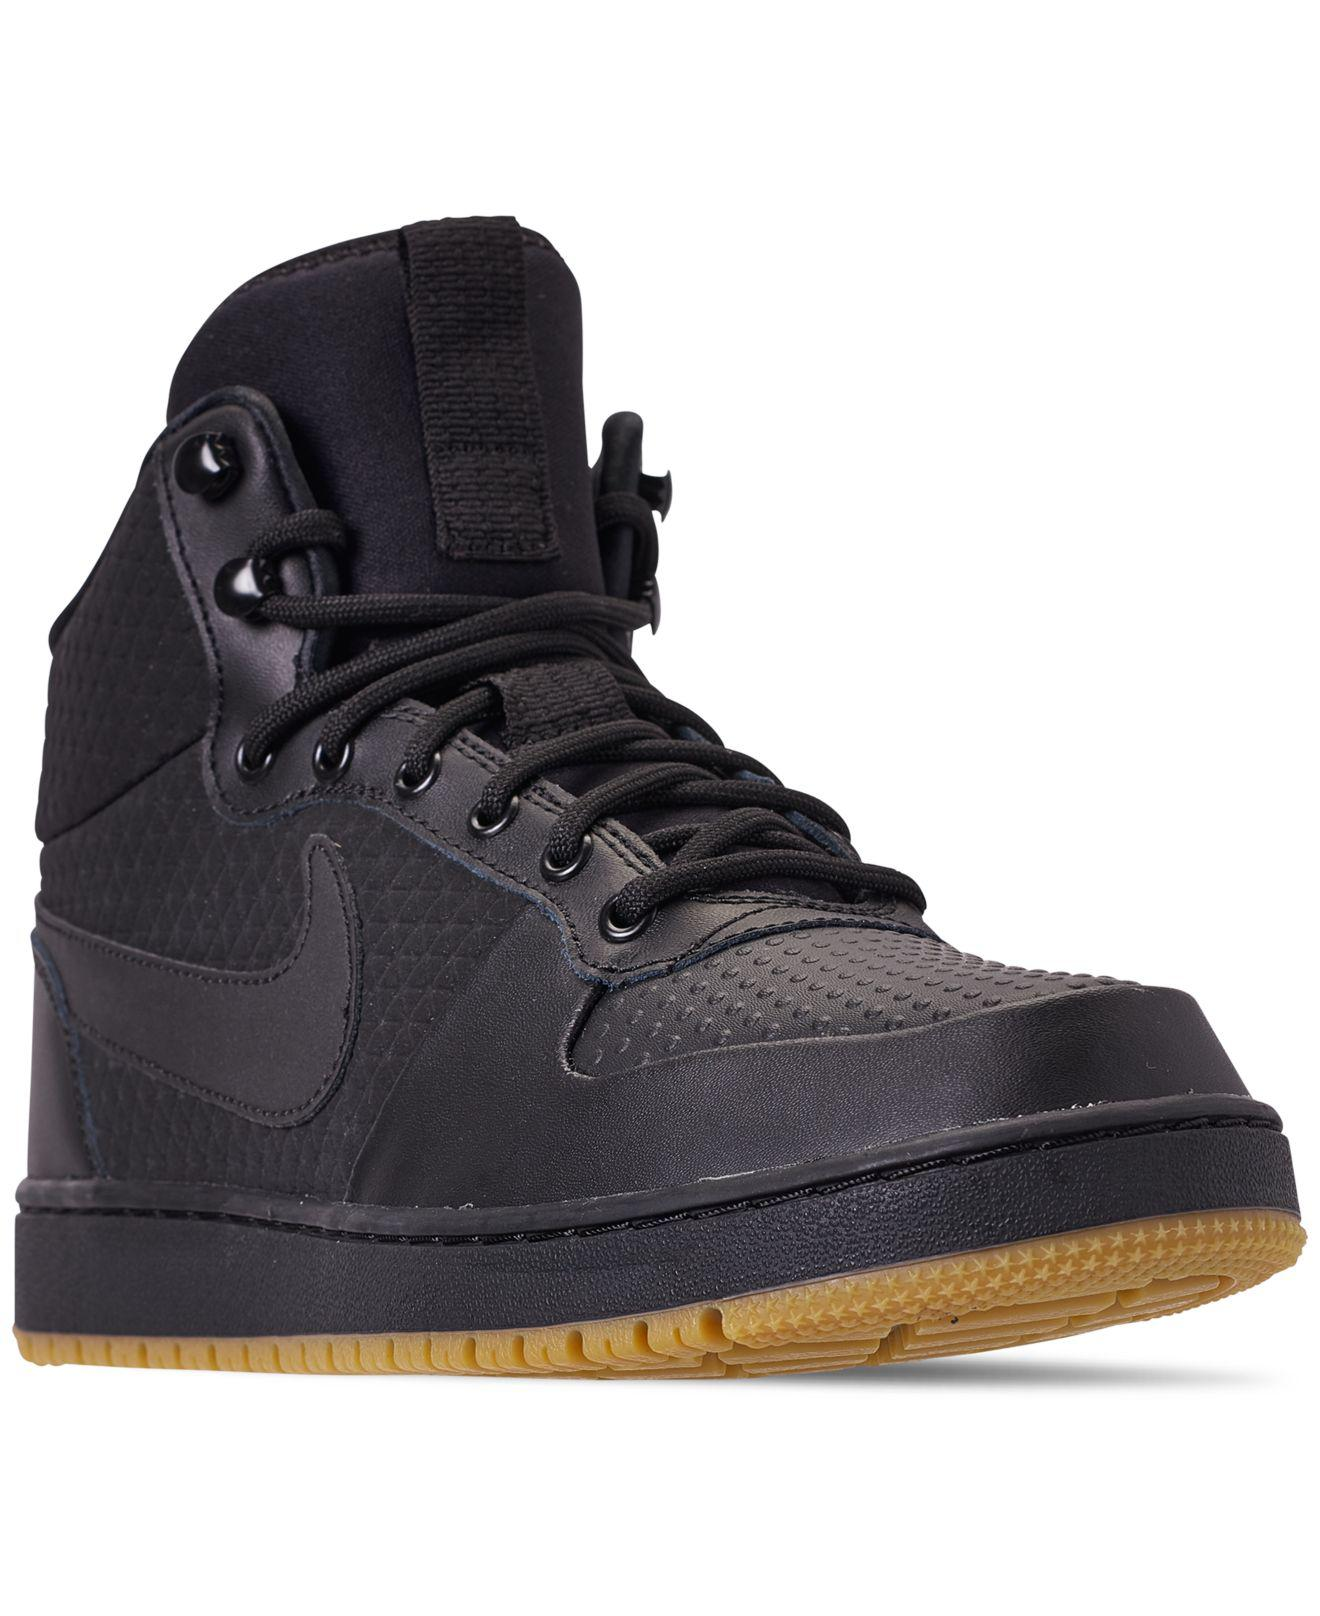 2a26f2ace7 Lyst - Nike Ebernon Mid Winter Casual Sneakers From Finish Line in ...